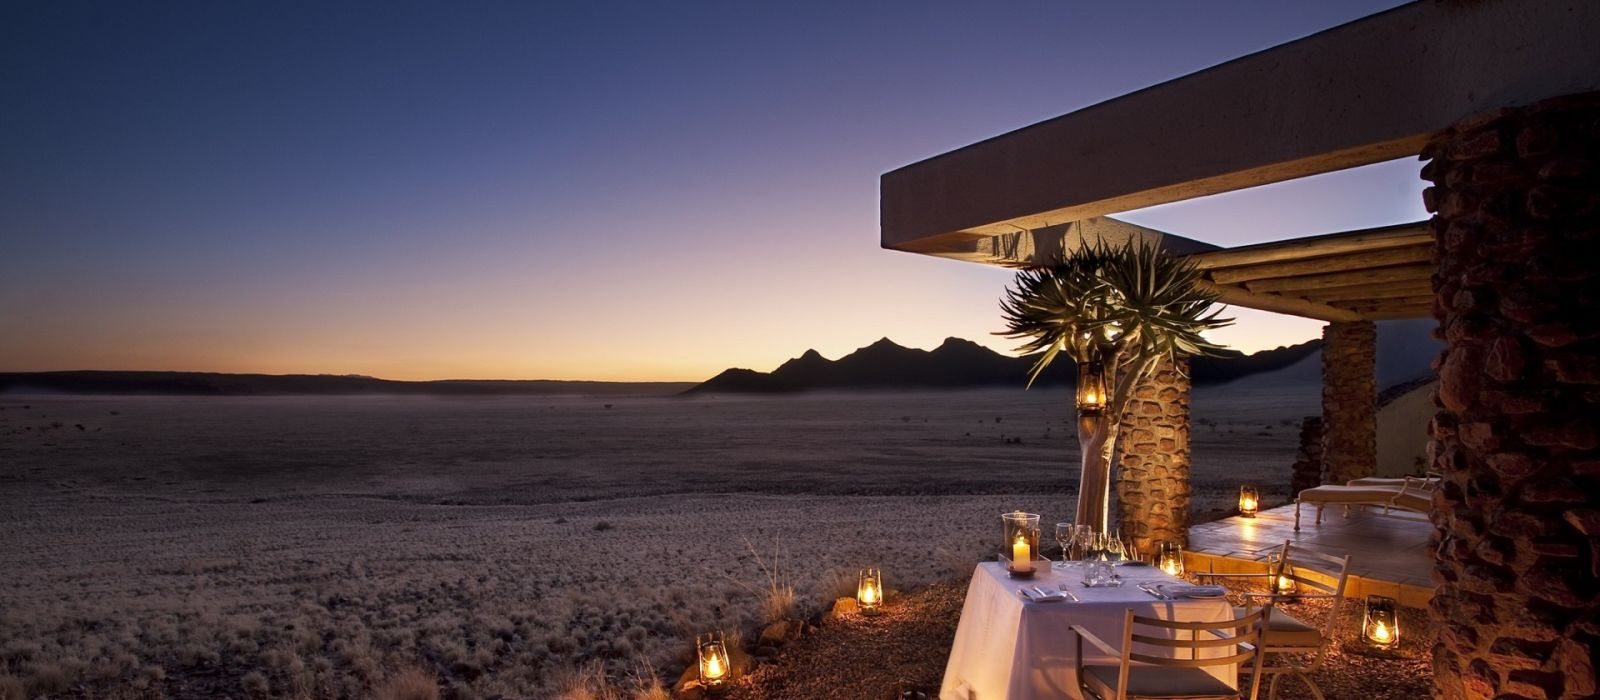 Hotel Am Weinberg Boutique  Namibia